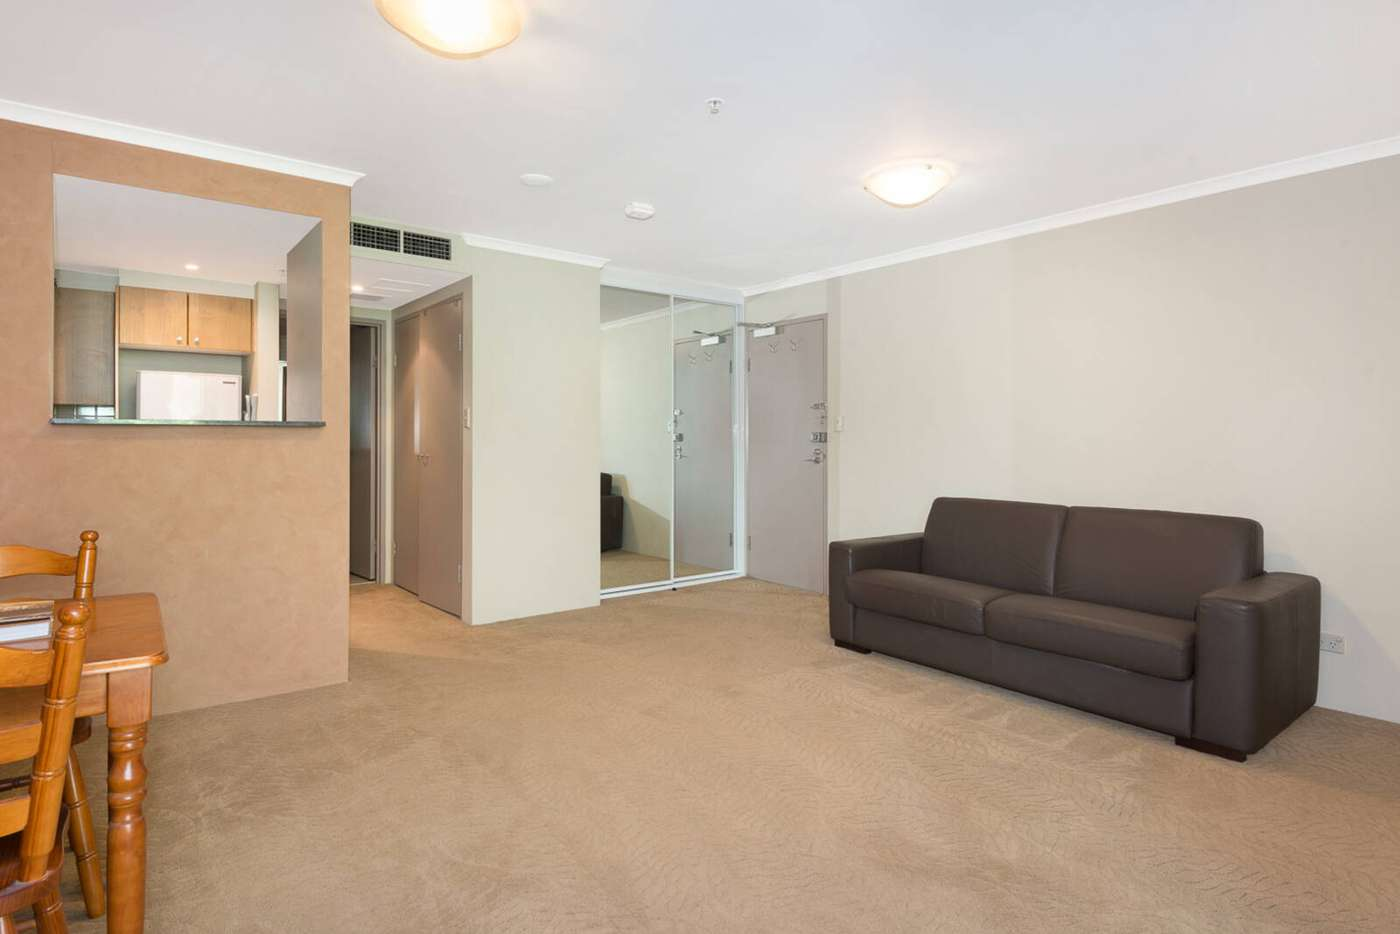 Main view of Homely studio listing, 14/237 Miller Street, North Sydney NSW 2060